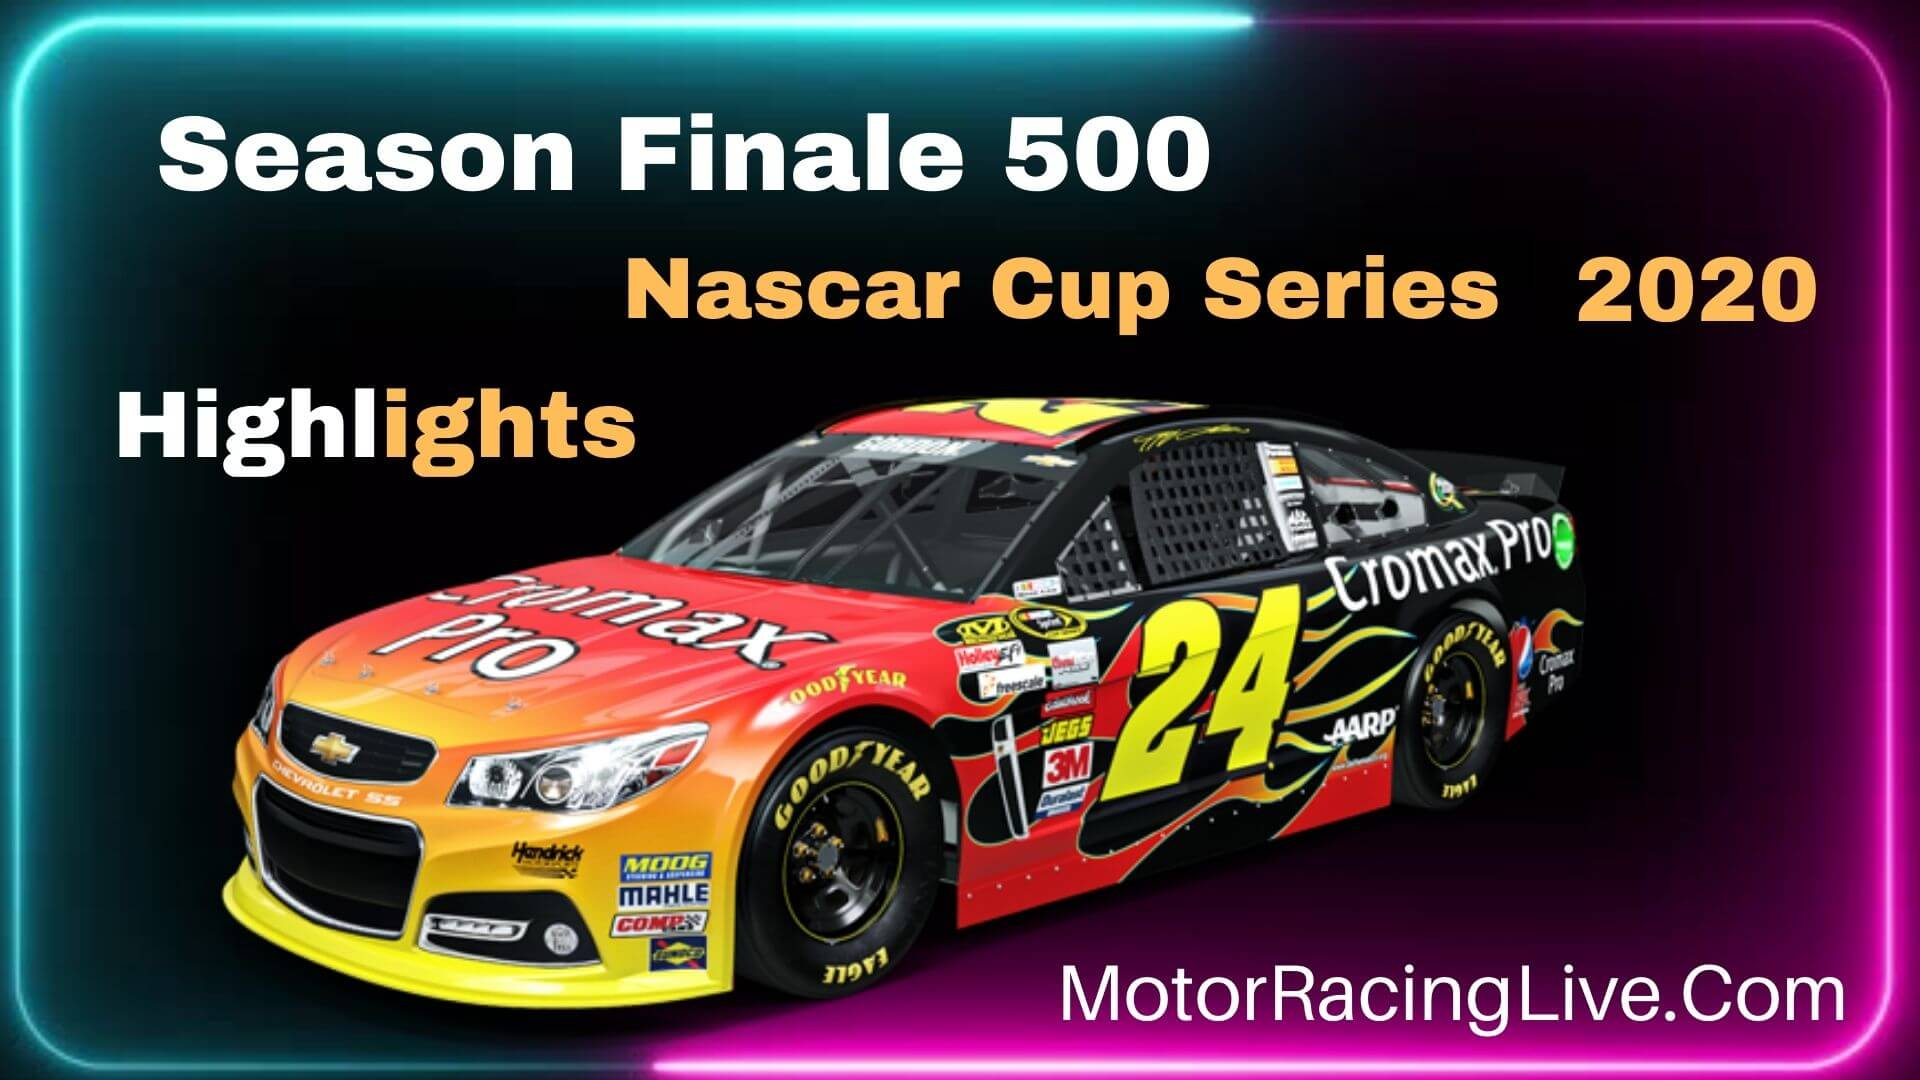 Season Finale 500 Highlights Nascar Cup Series 2020